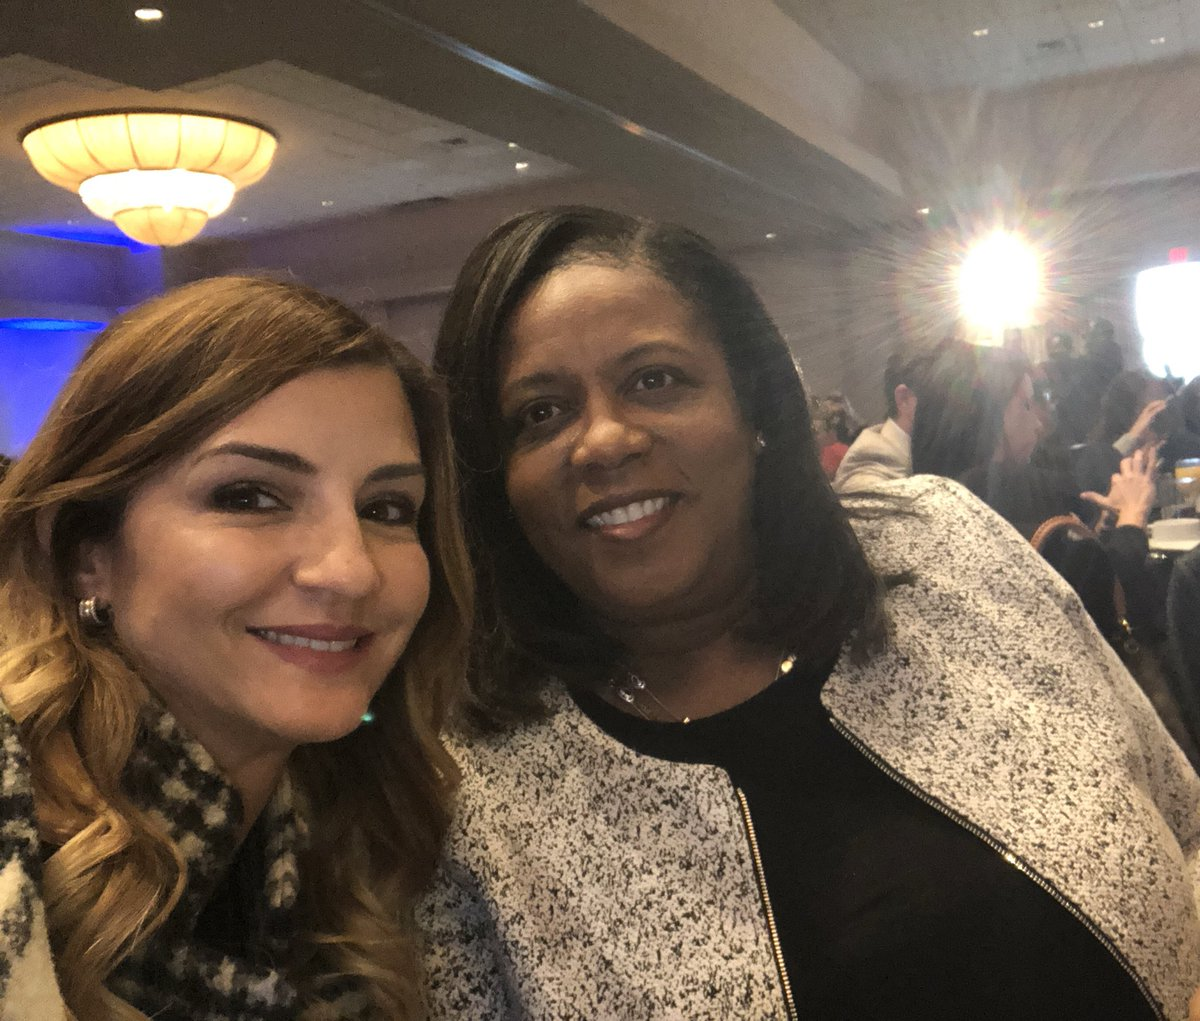 At this year's #PrincipalToday breakfast, welcoming community leaders and business partners to experience what it's like to serve in one of the most rewarding jobs. <br>http://pic.twitter.com/0bTyq0IudA